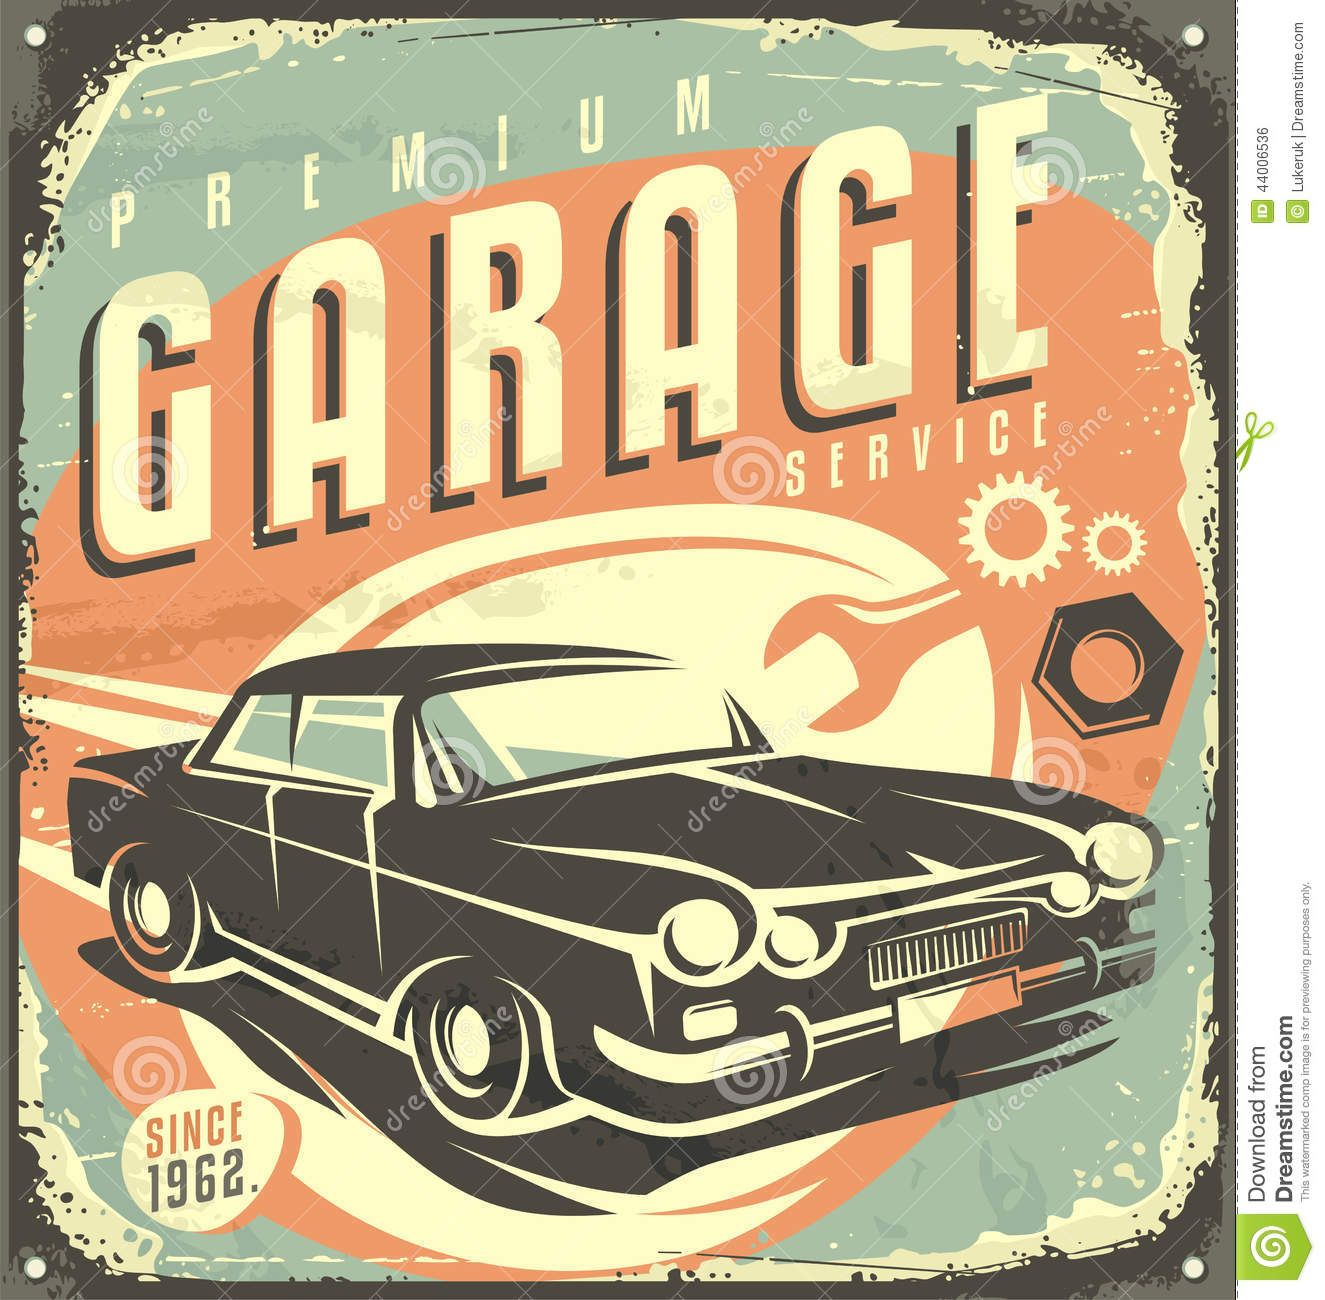 Car Old Garage Signs : Garage vintage metal sign download from over million